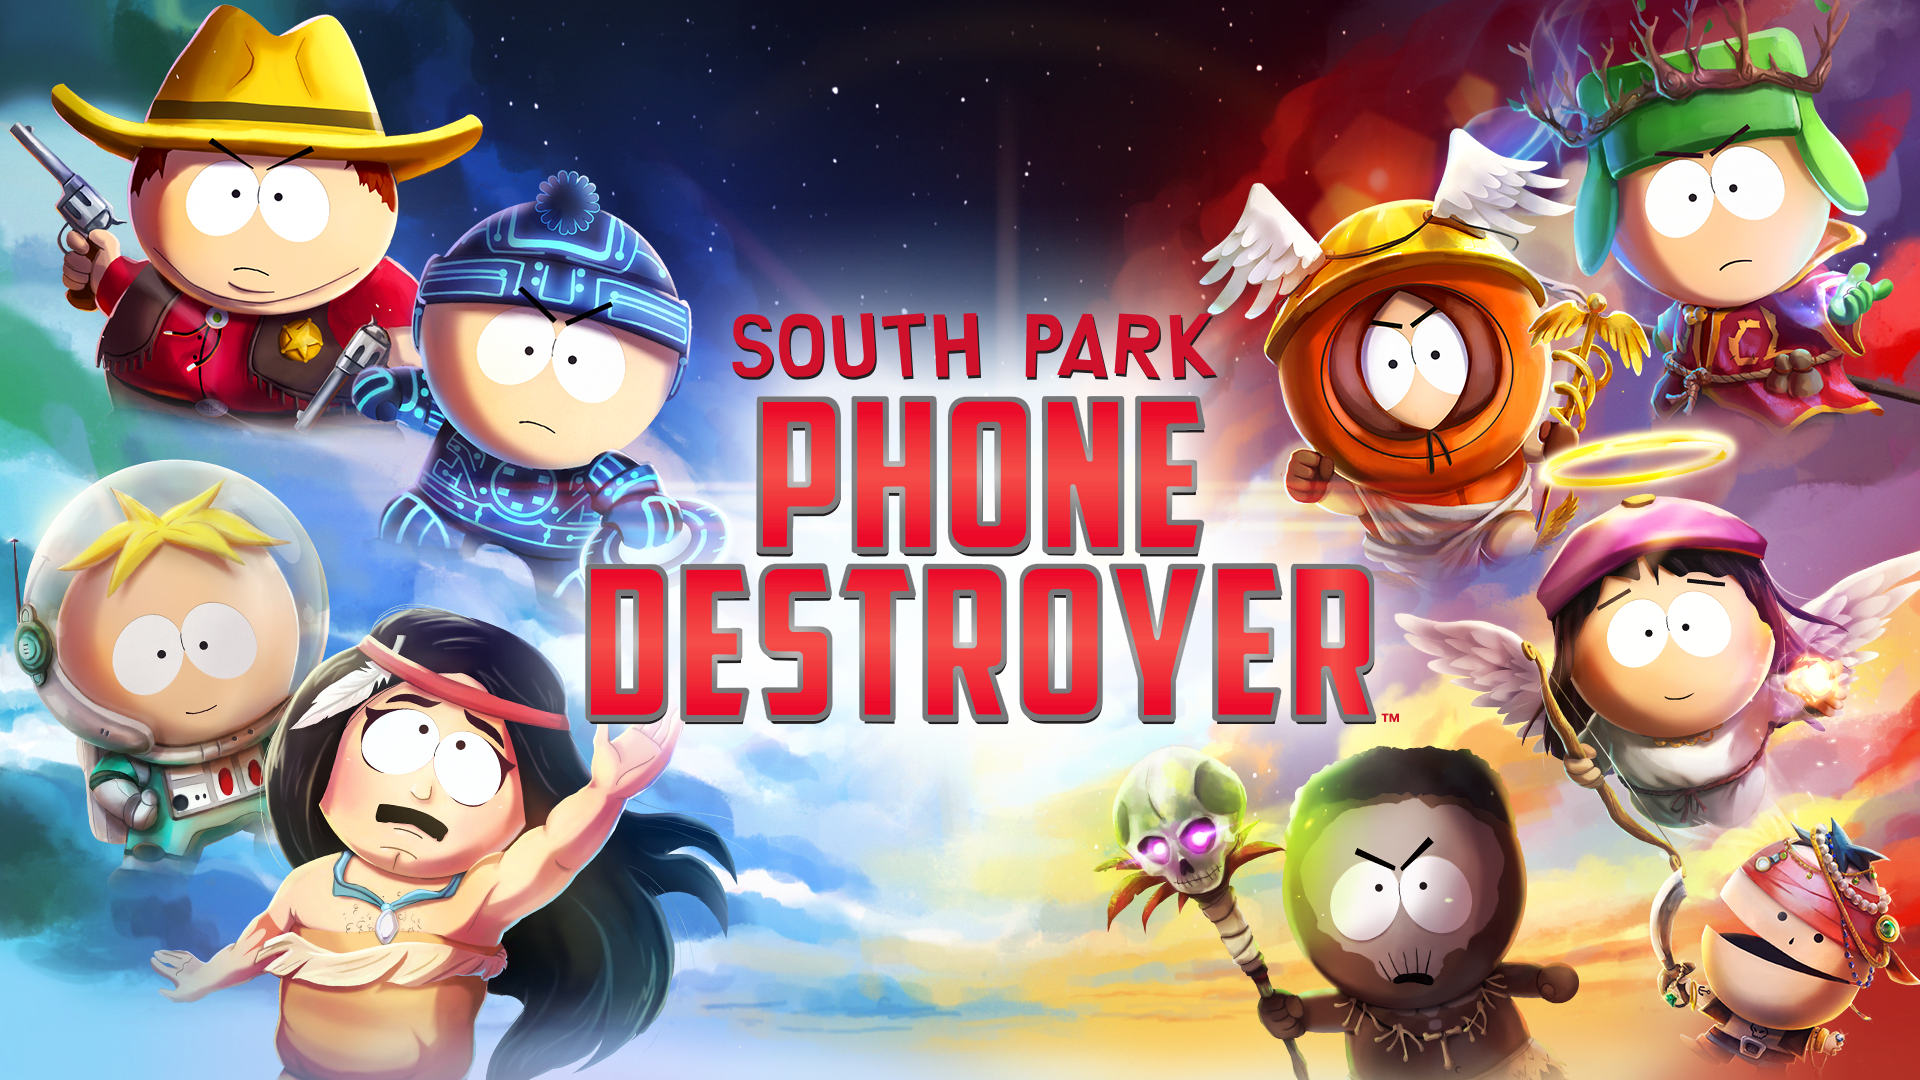 South Park Phone Destroyer 1968800 Hd Wallpaper Backgrounds